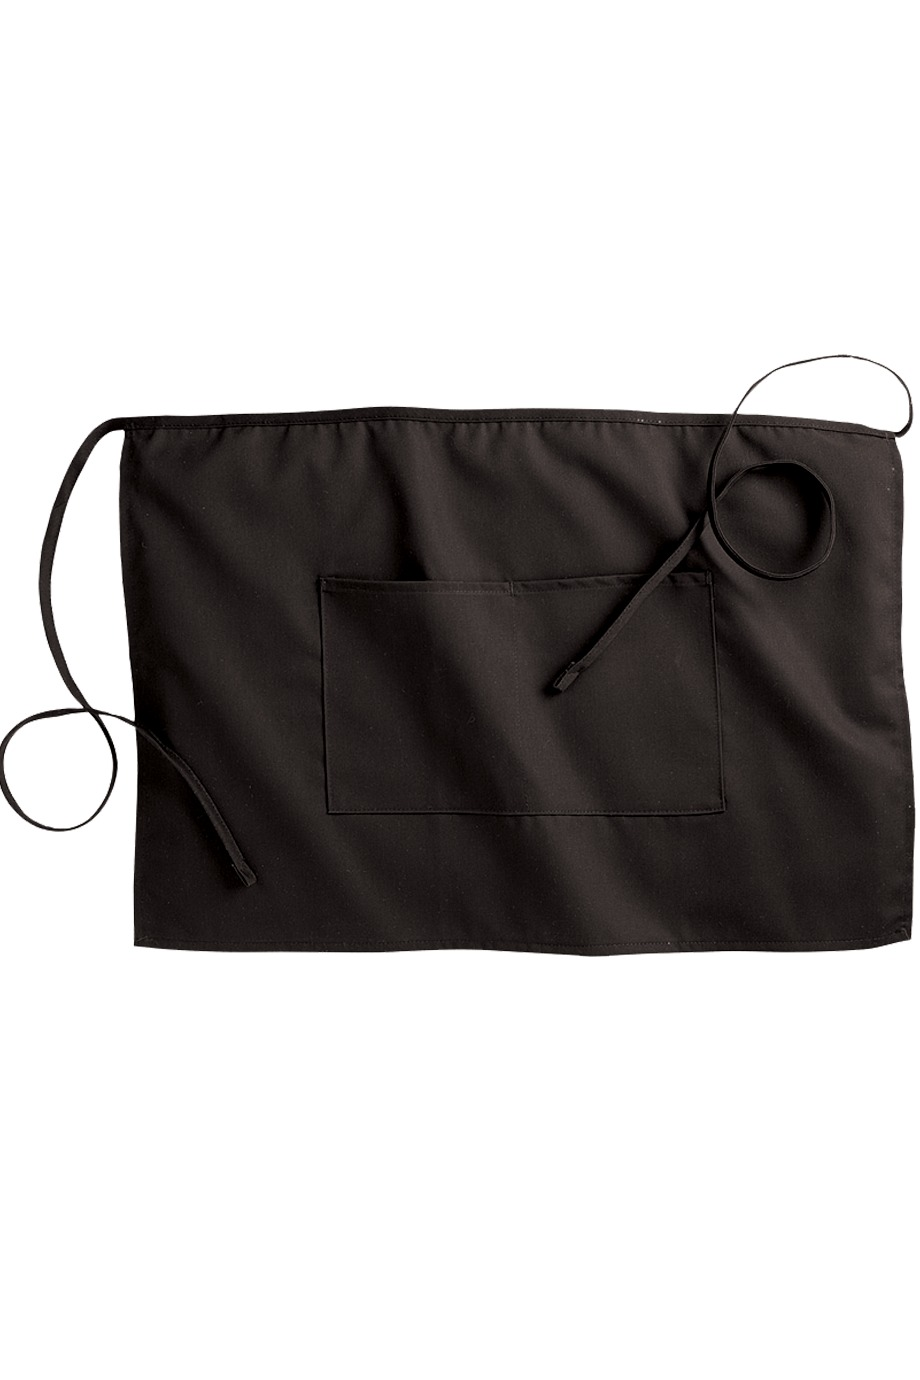 Edwards Garment 9007 - Half Bistro Apron